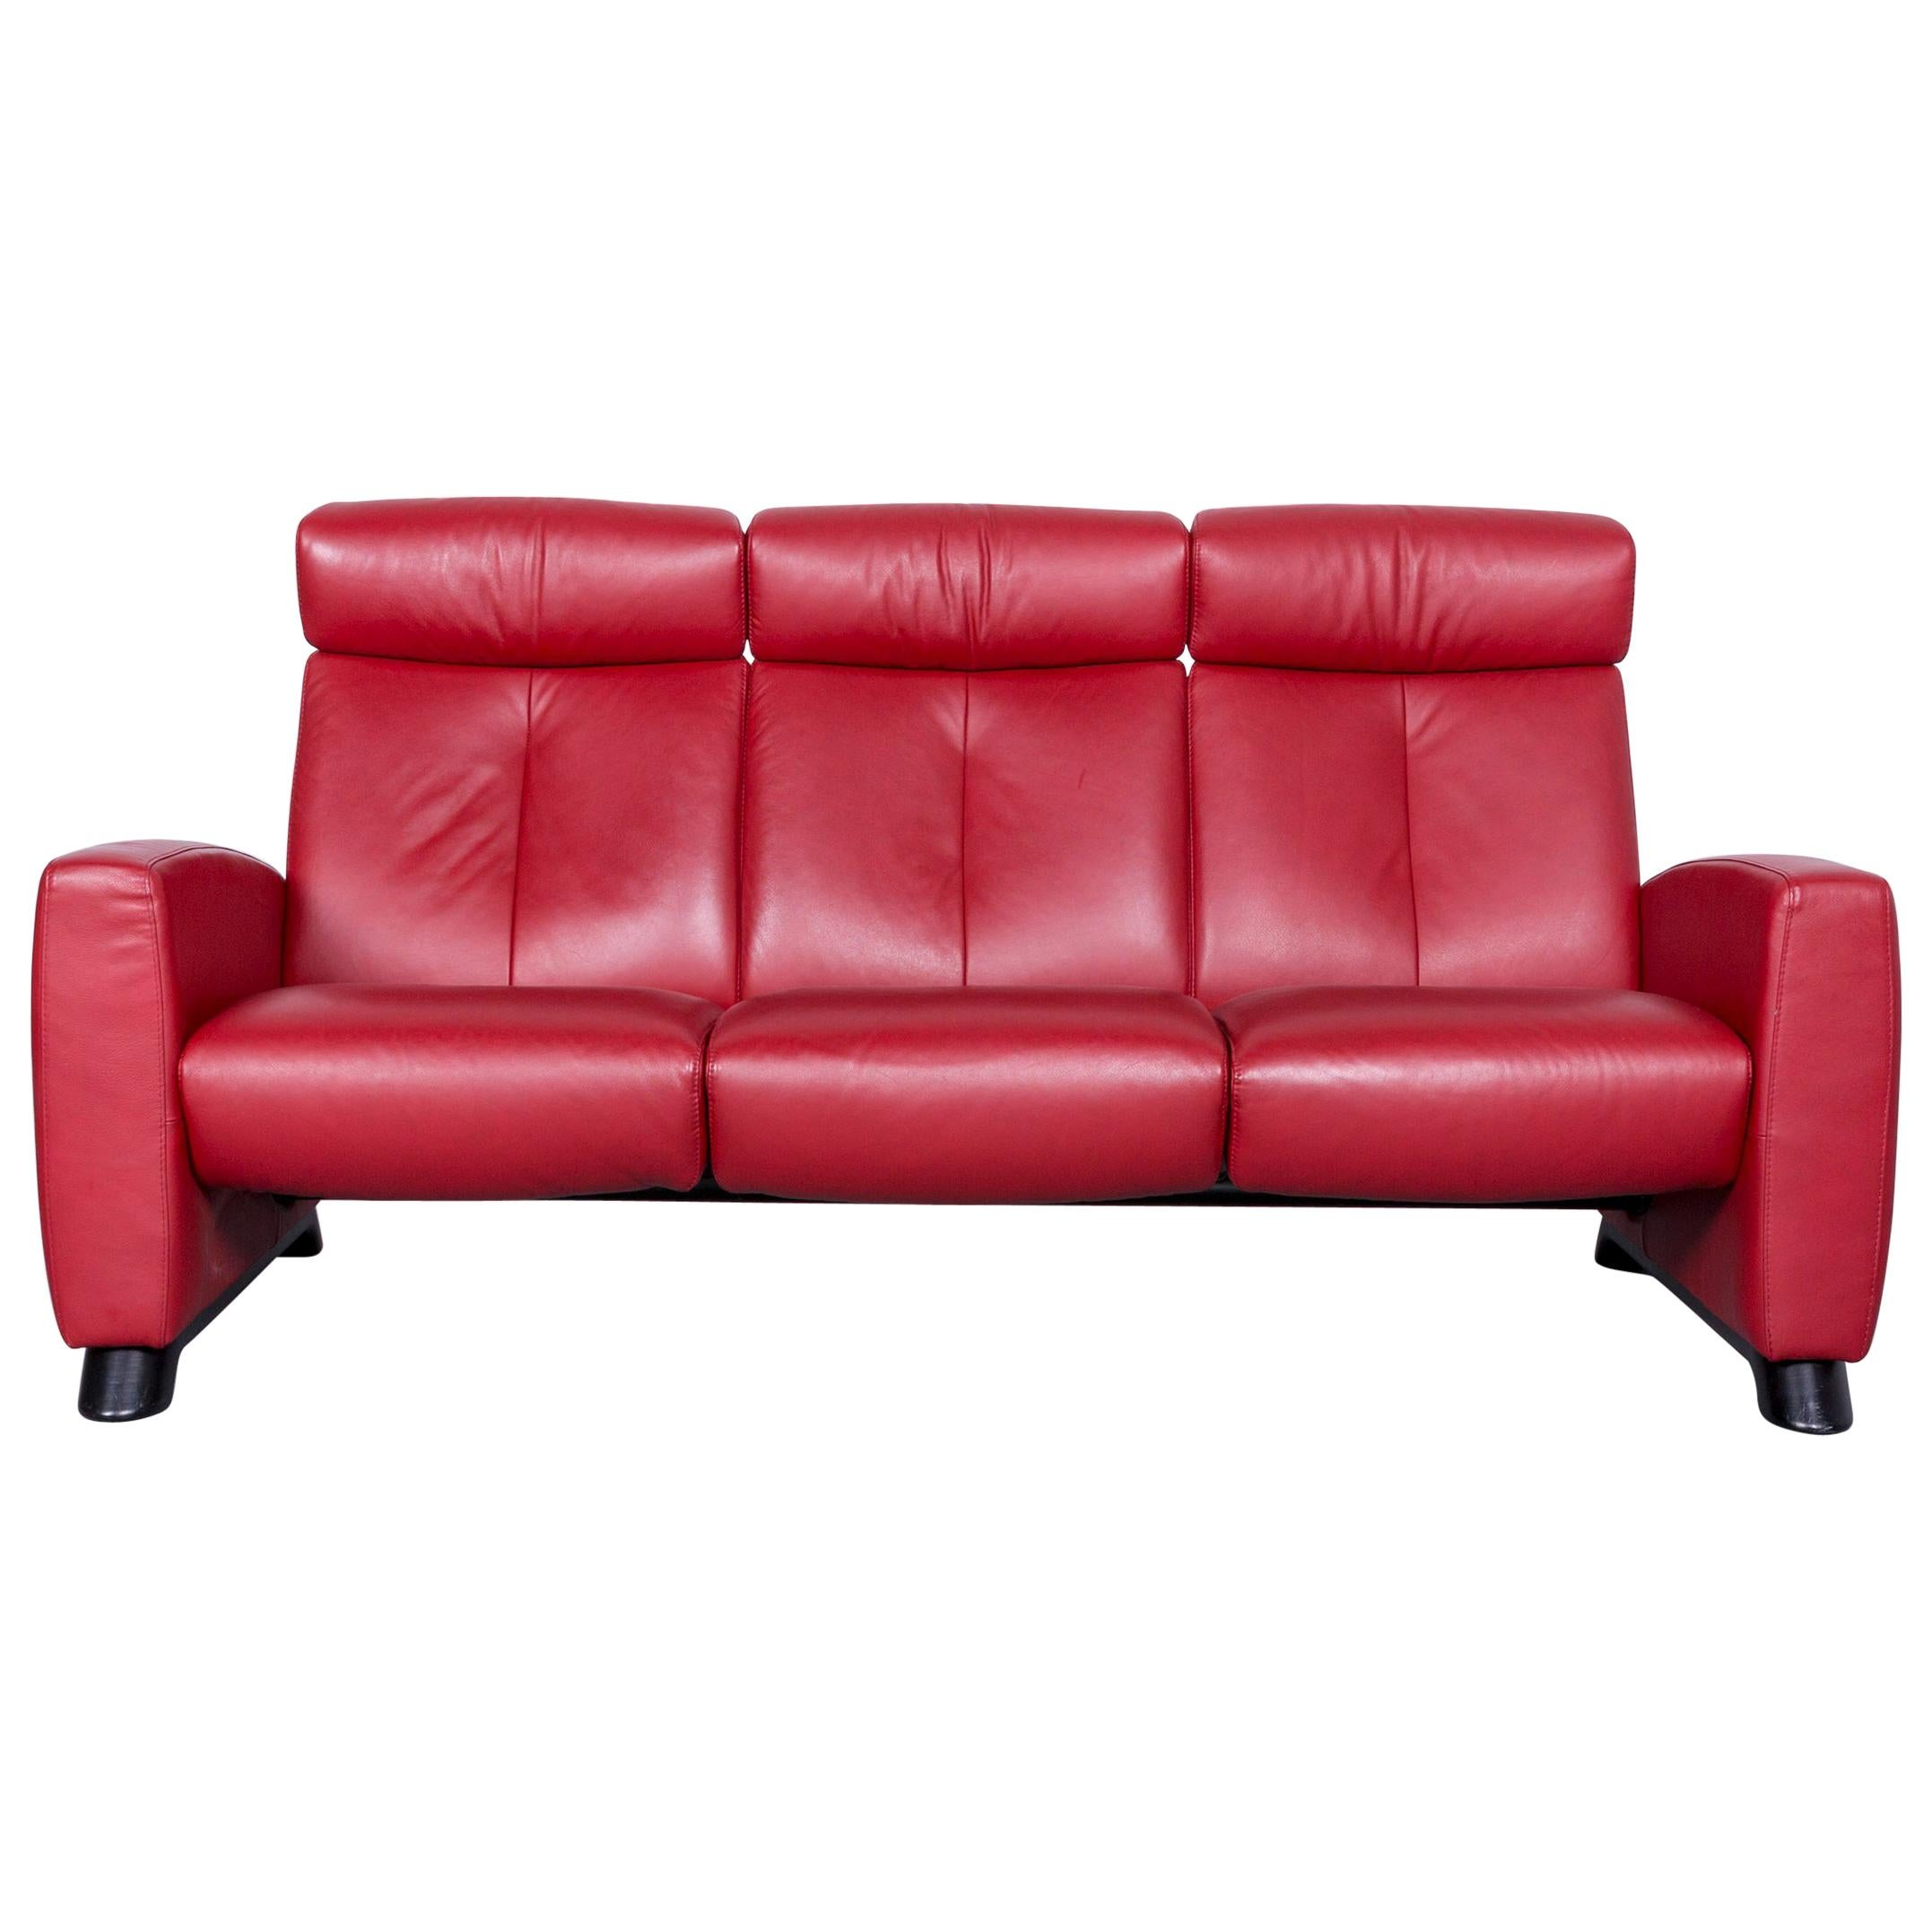 red leather two seater sofa foam cushions density ekornes stressless relax tv recliner seat for sale at 1stdibs